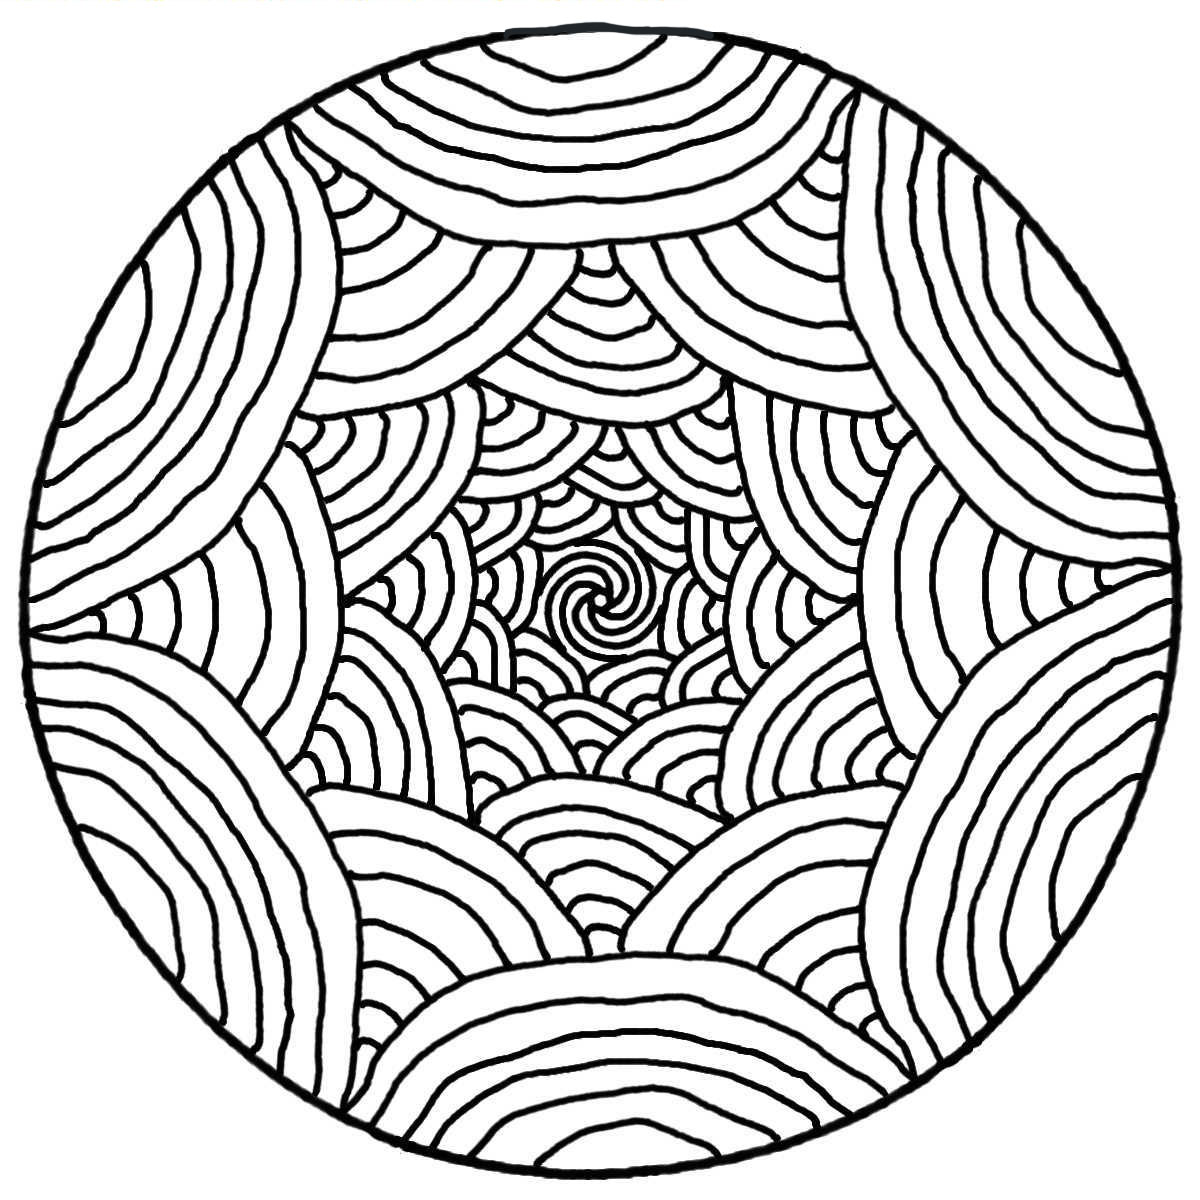 rainbow mandala coloring pages don39t eat the paste sun and rainbow coloring page mandala coloring rainbow pages